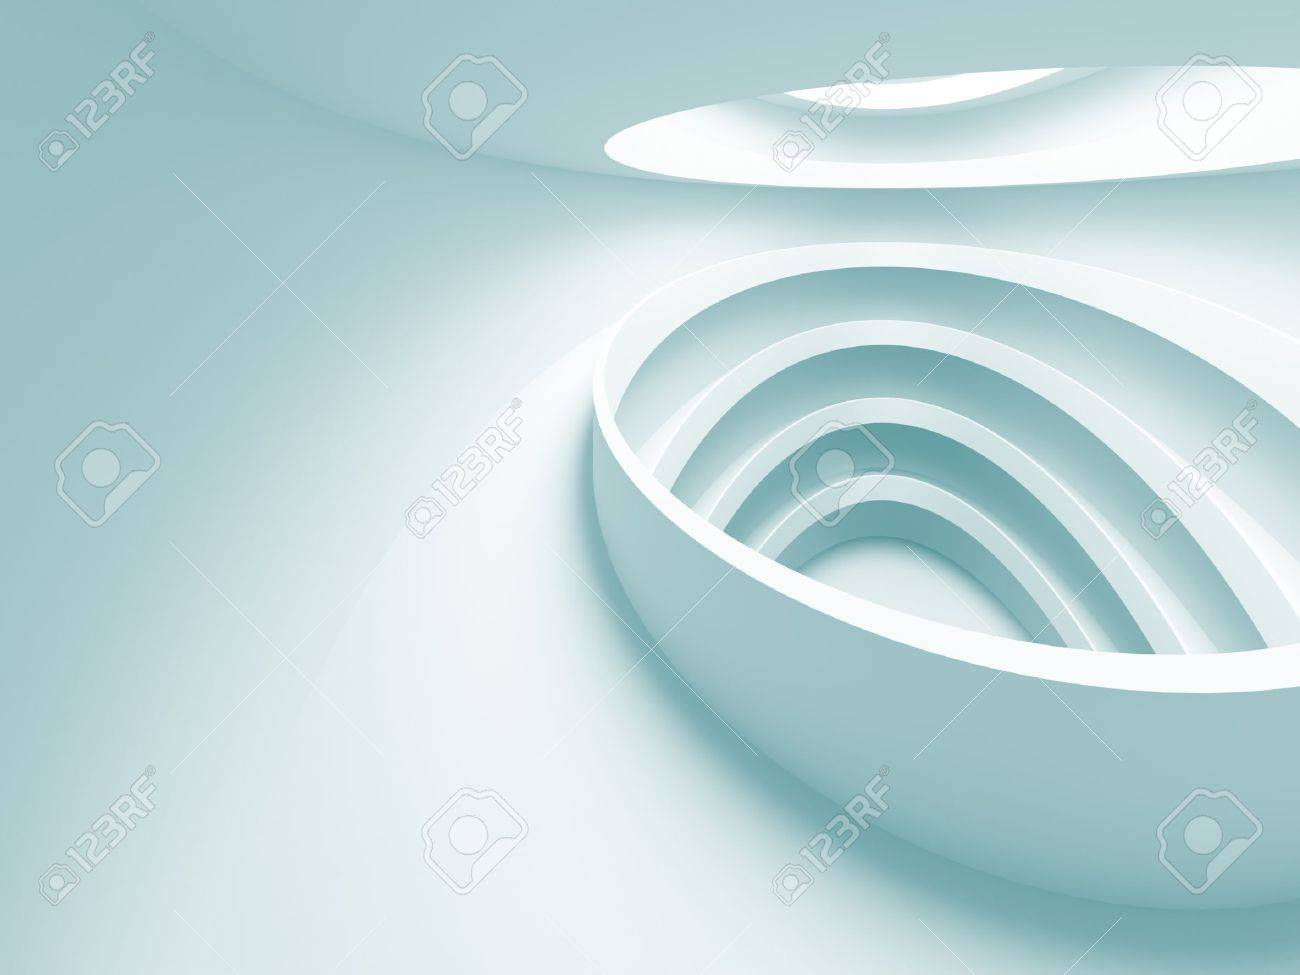 Abstract Architecture Background Stock Photo - 8897999